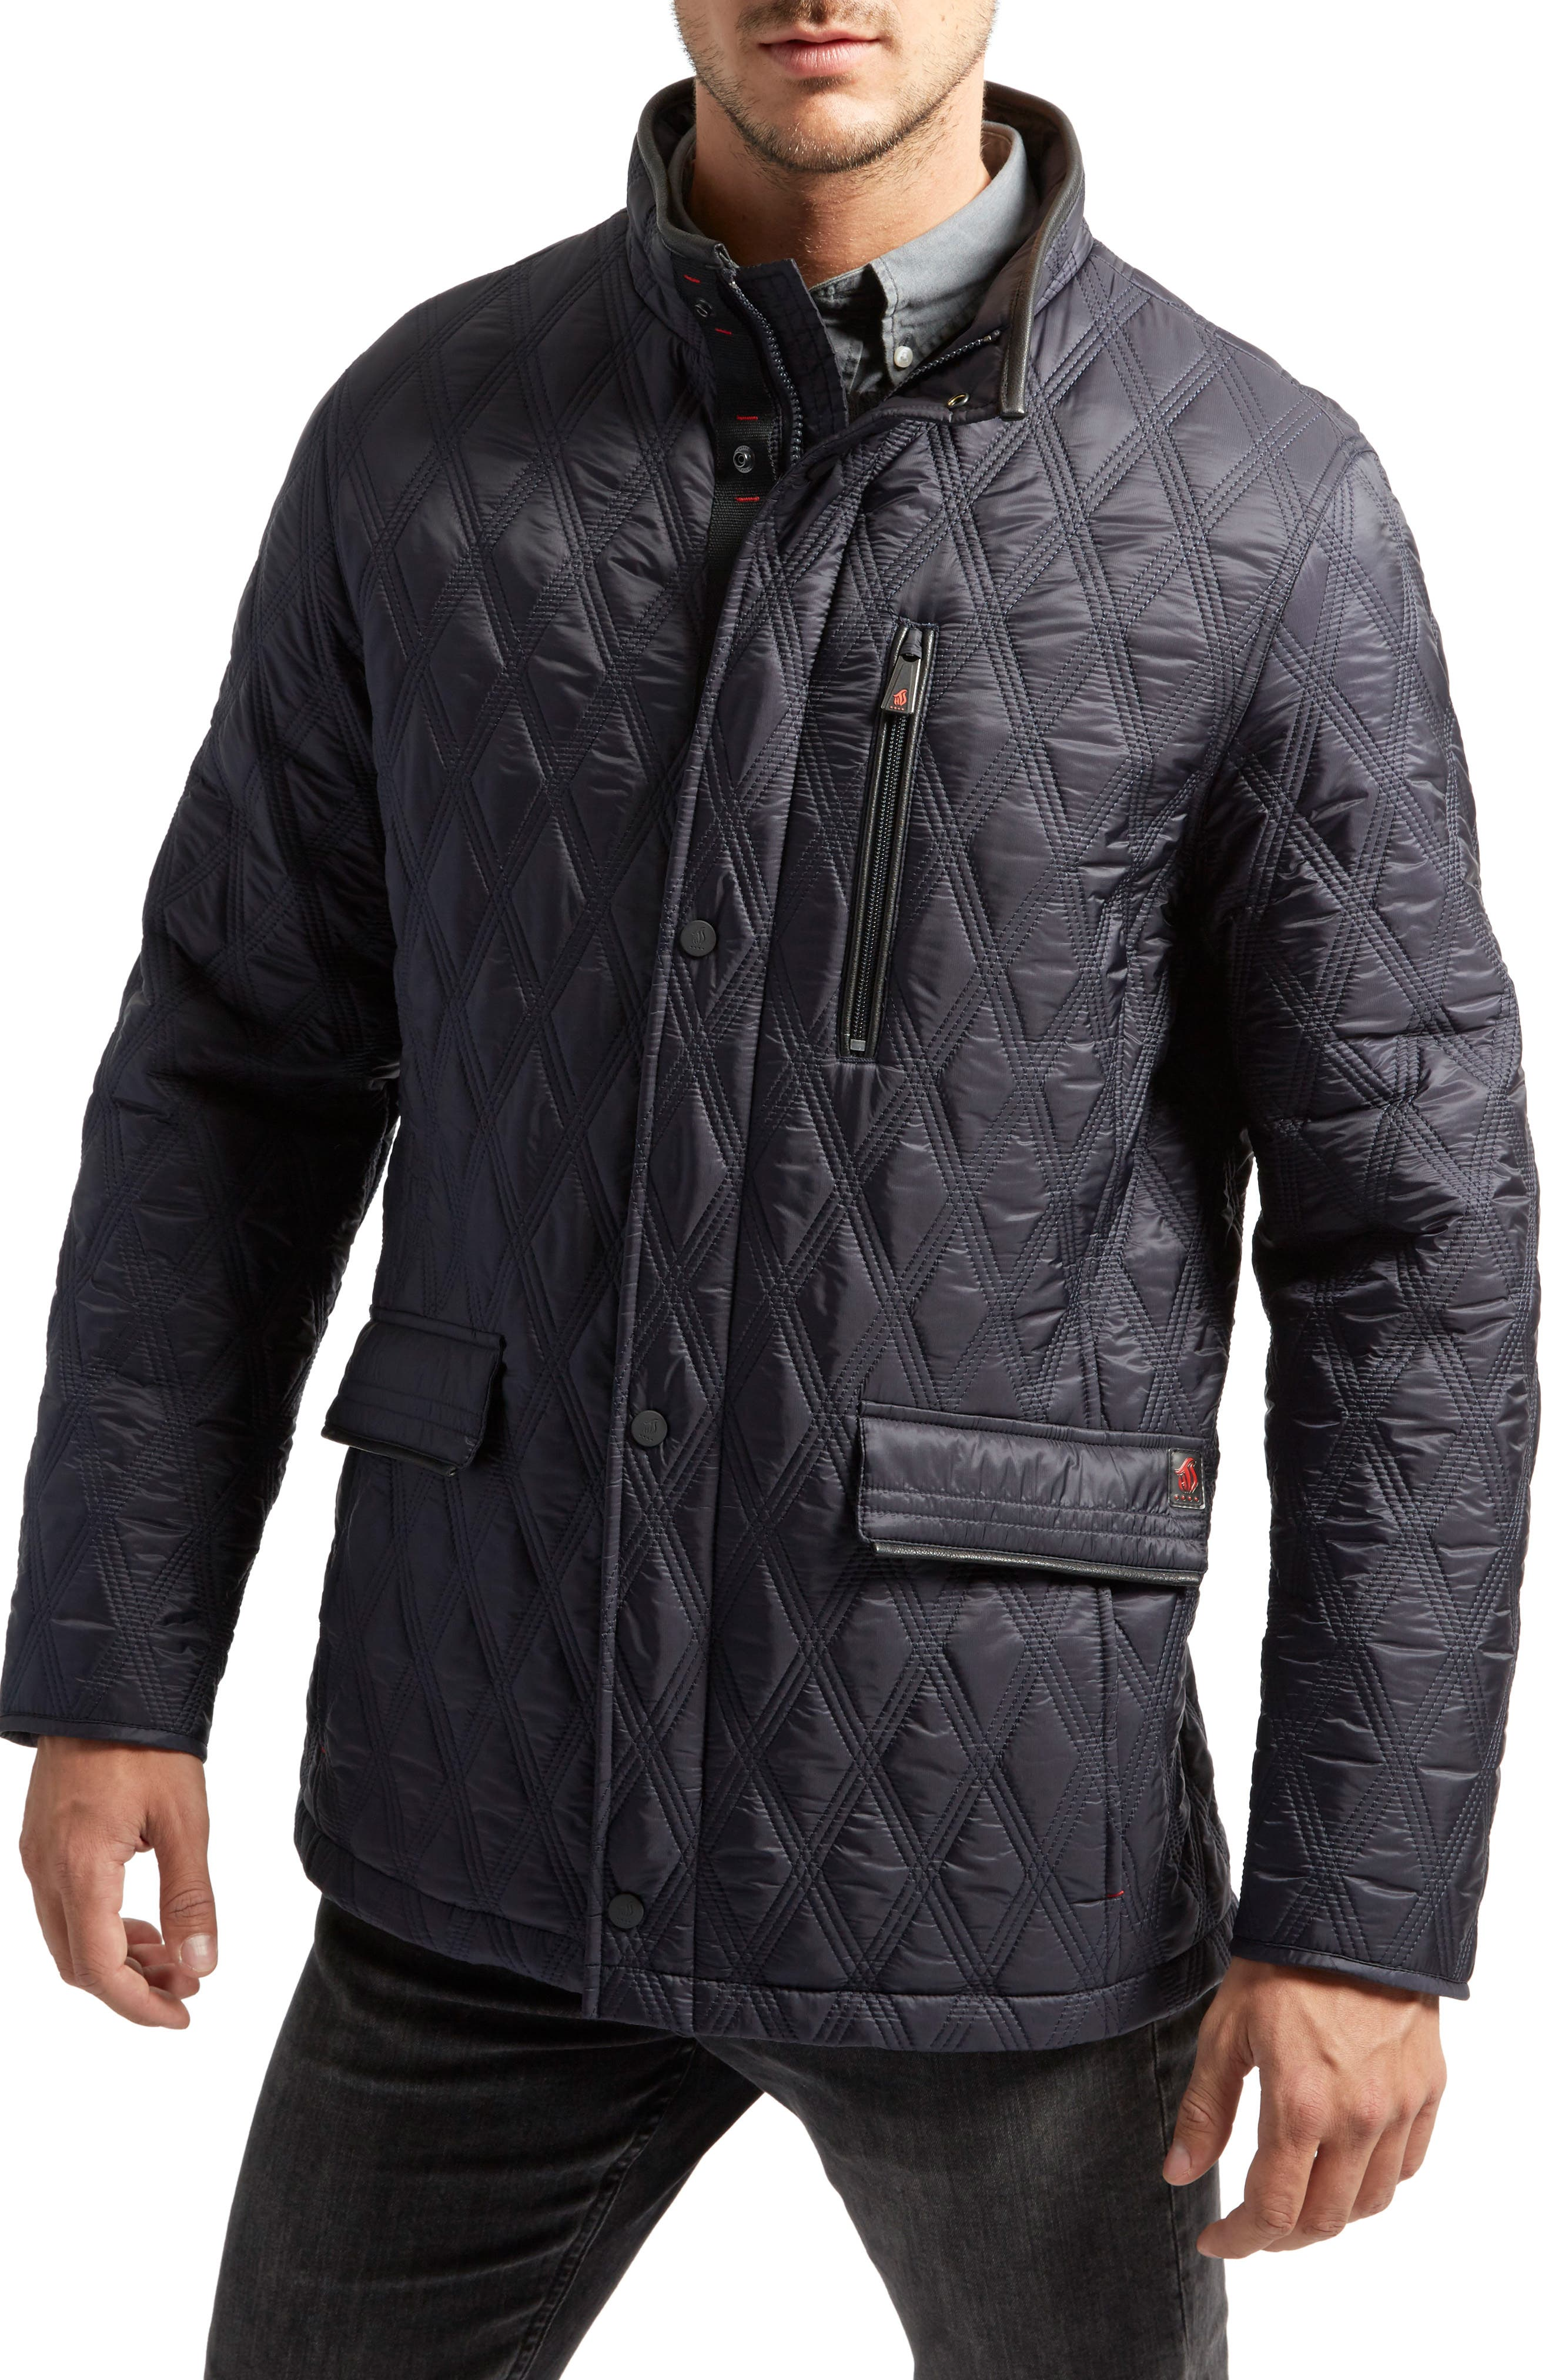 Prichard Triple Stitch Quilted Heat System Jacket,                         Main,                         color, Midnight